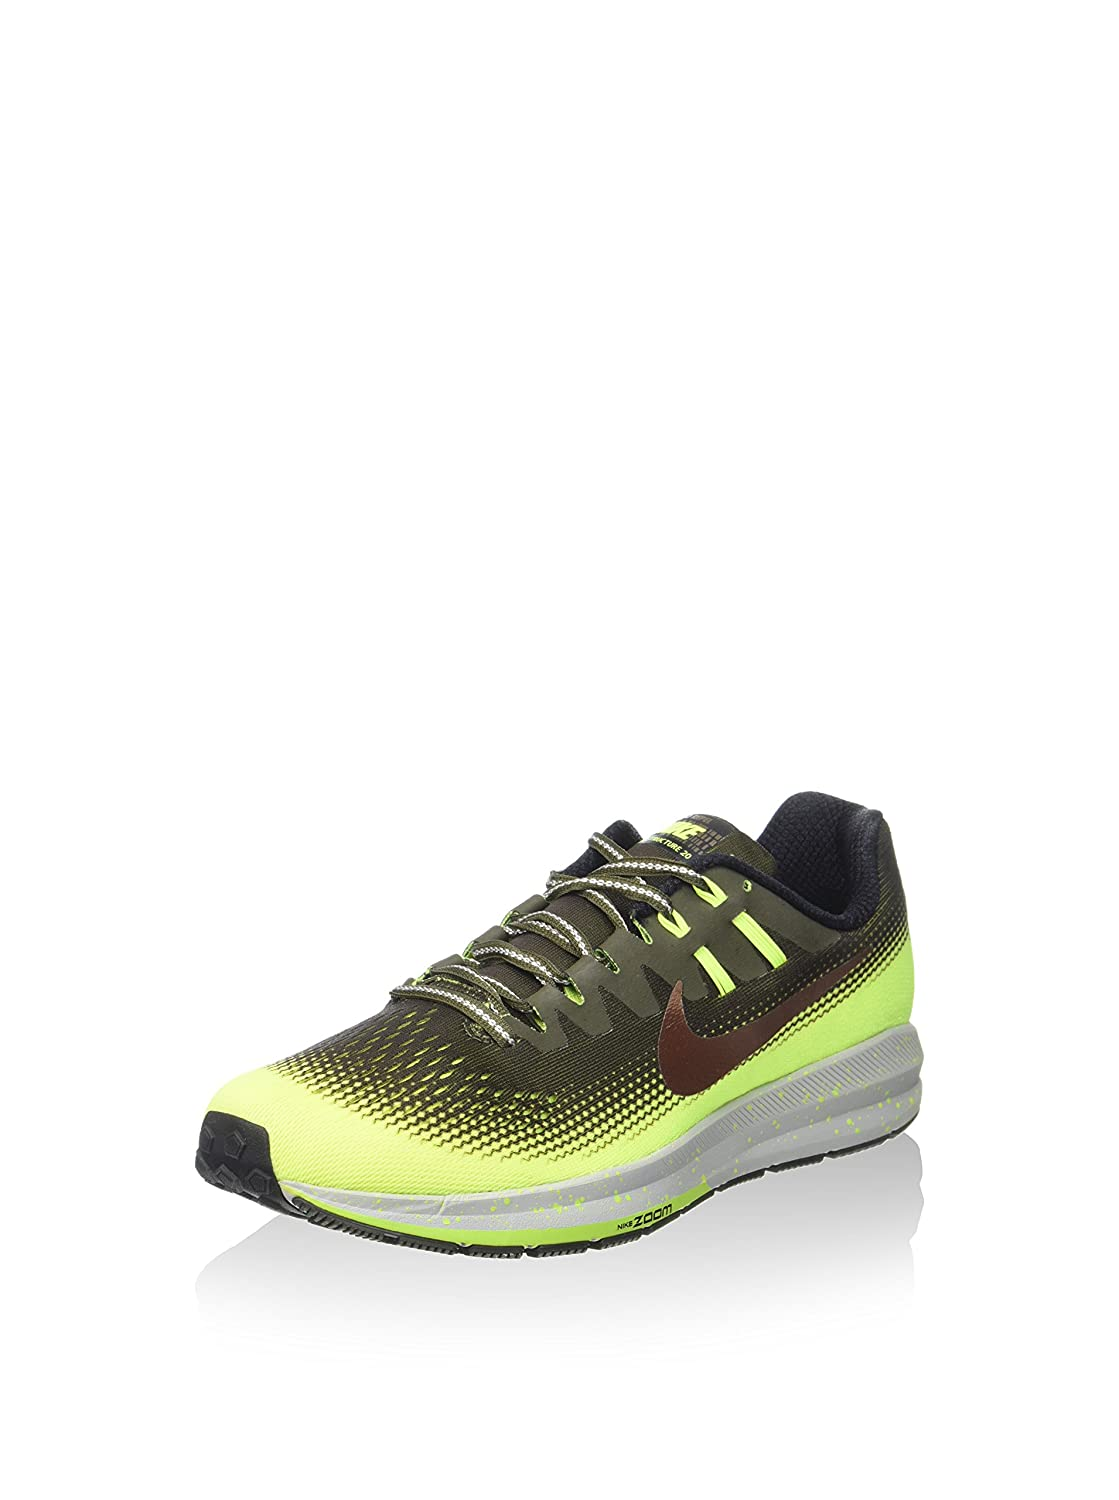 half off ed0cd f6d09 Amazon.com   Nike Men s Air Zoom Structure 20 Shield Running Shoes    Athletic